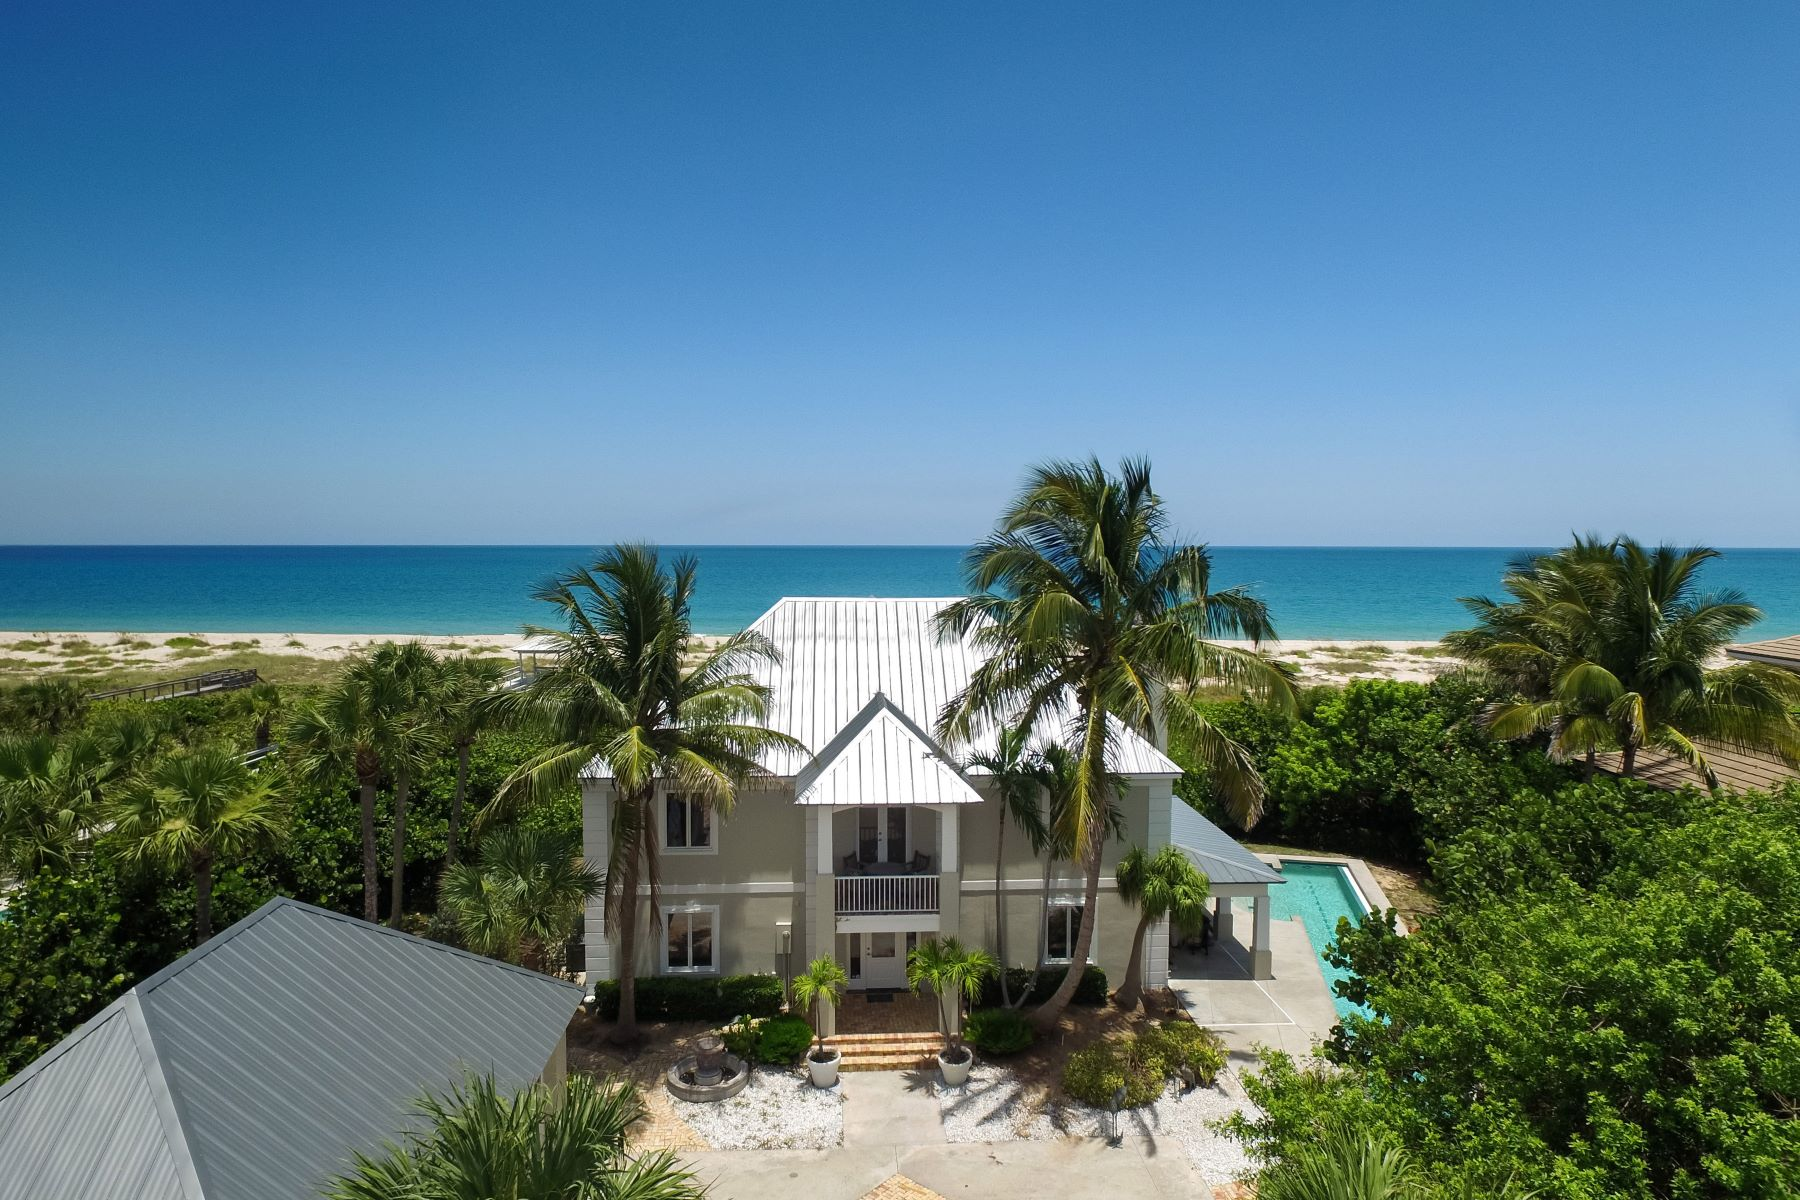 Casa Unifamiliar por un Venta en Oceanfront Estate Home 820 Crescent Beach Road Vero Beach, Florida, 32963 Estados Unidos